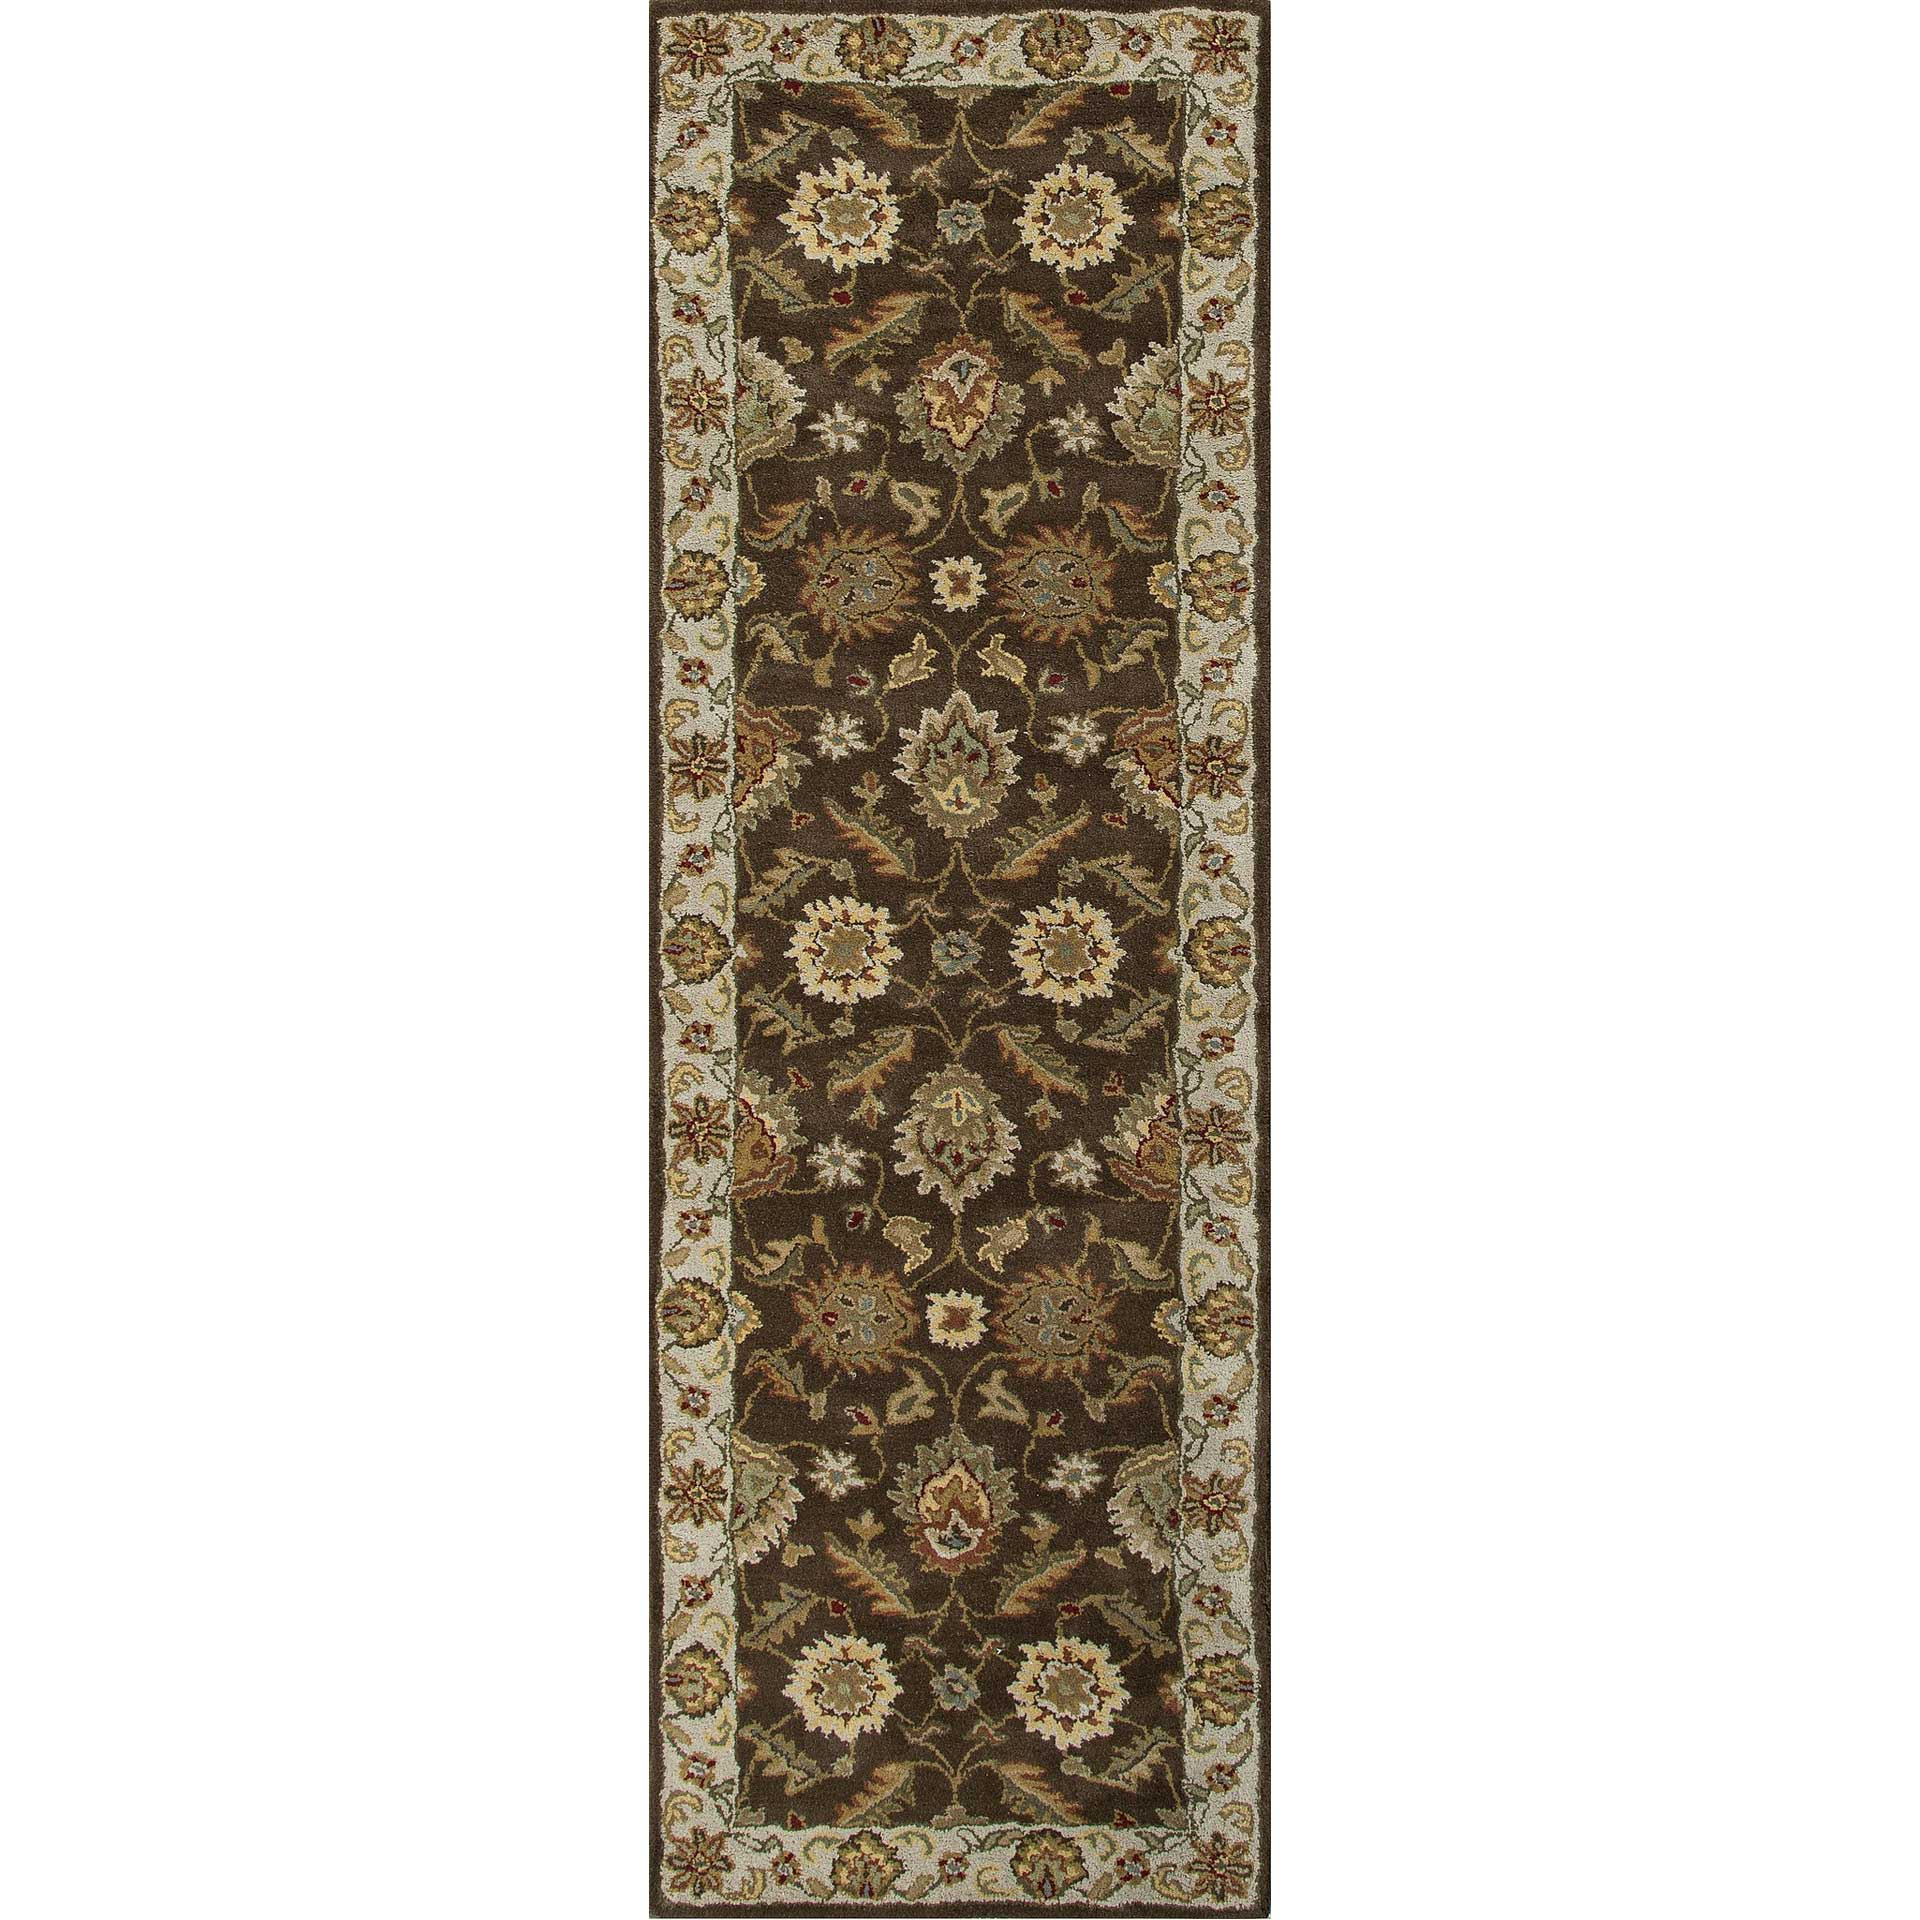 Mythos Maia Cocoa Brown/Dark Ivory Runner Rug